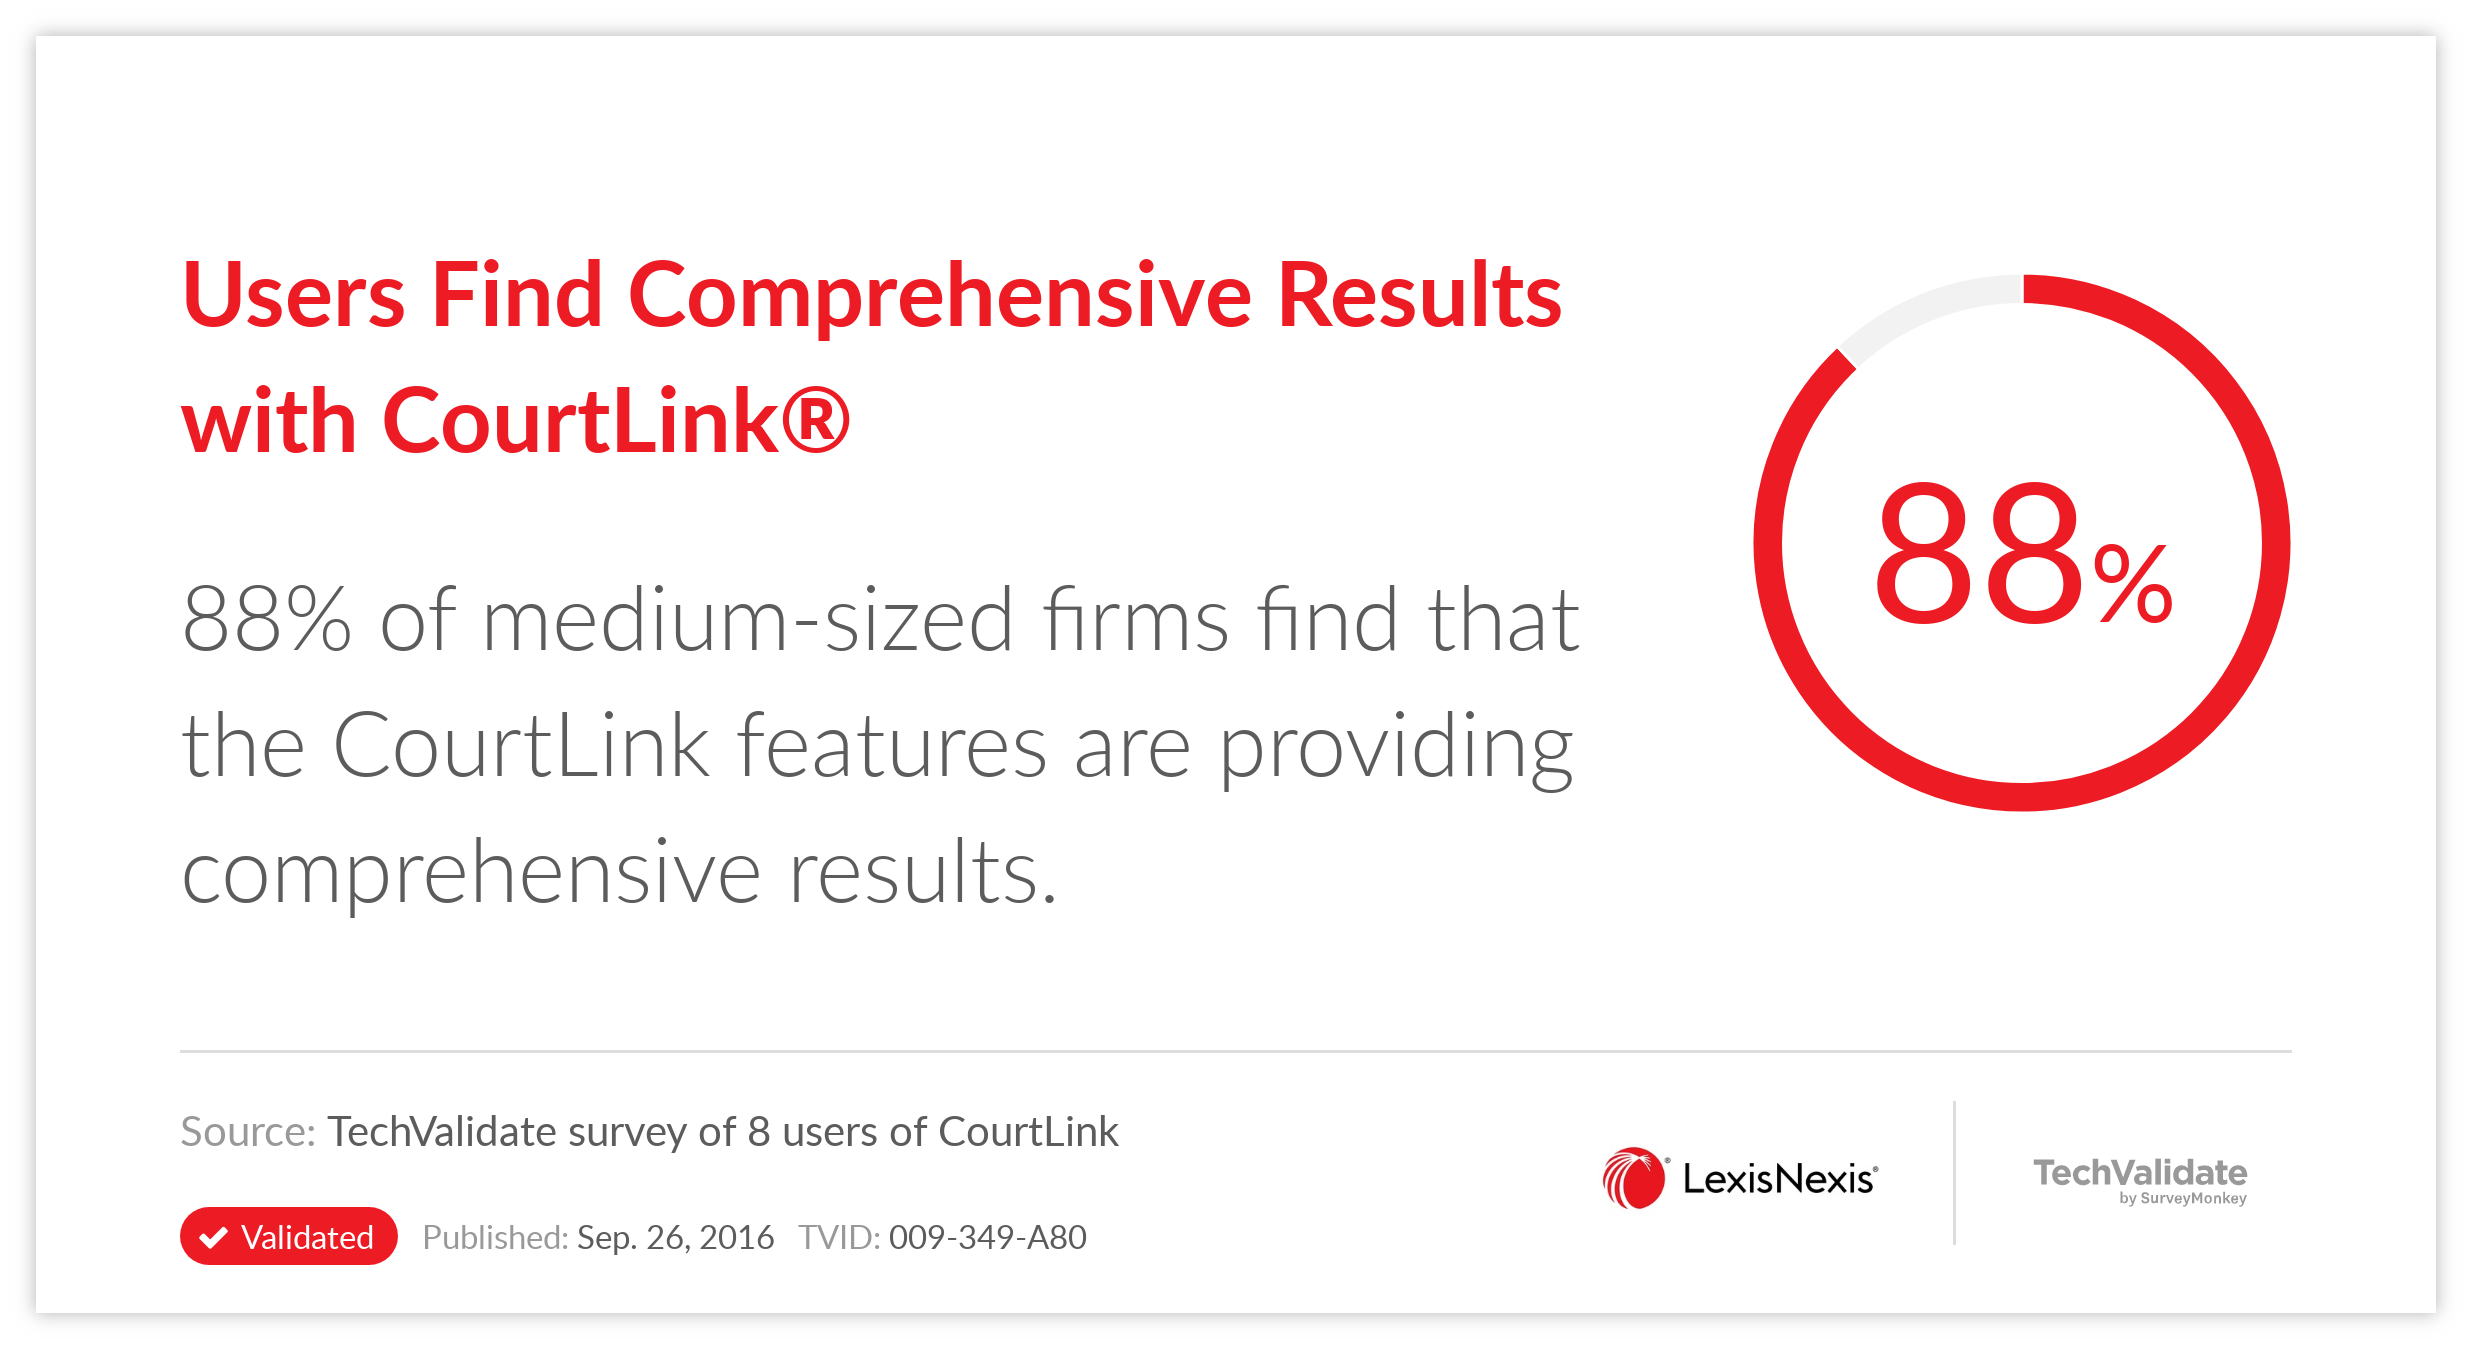 Users Find Comprehensive Results with CourtLink(R)